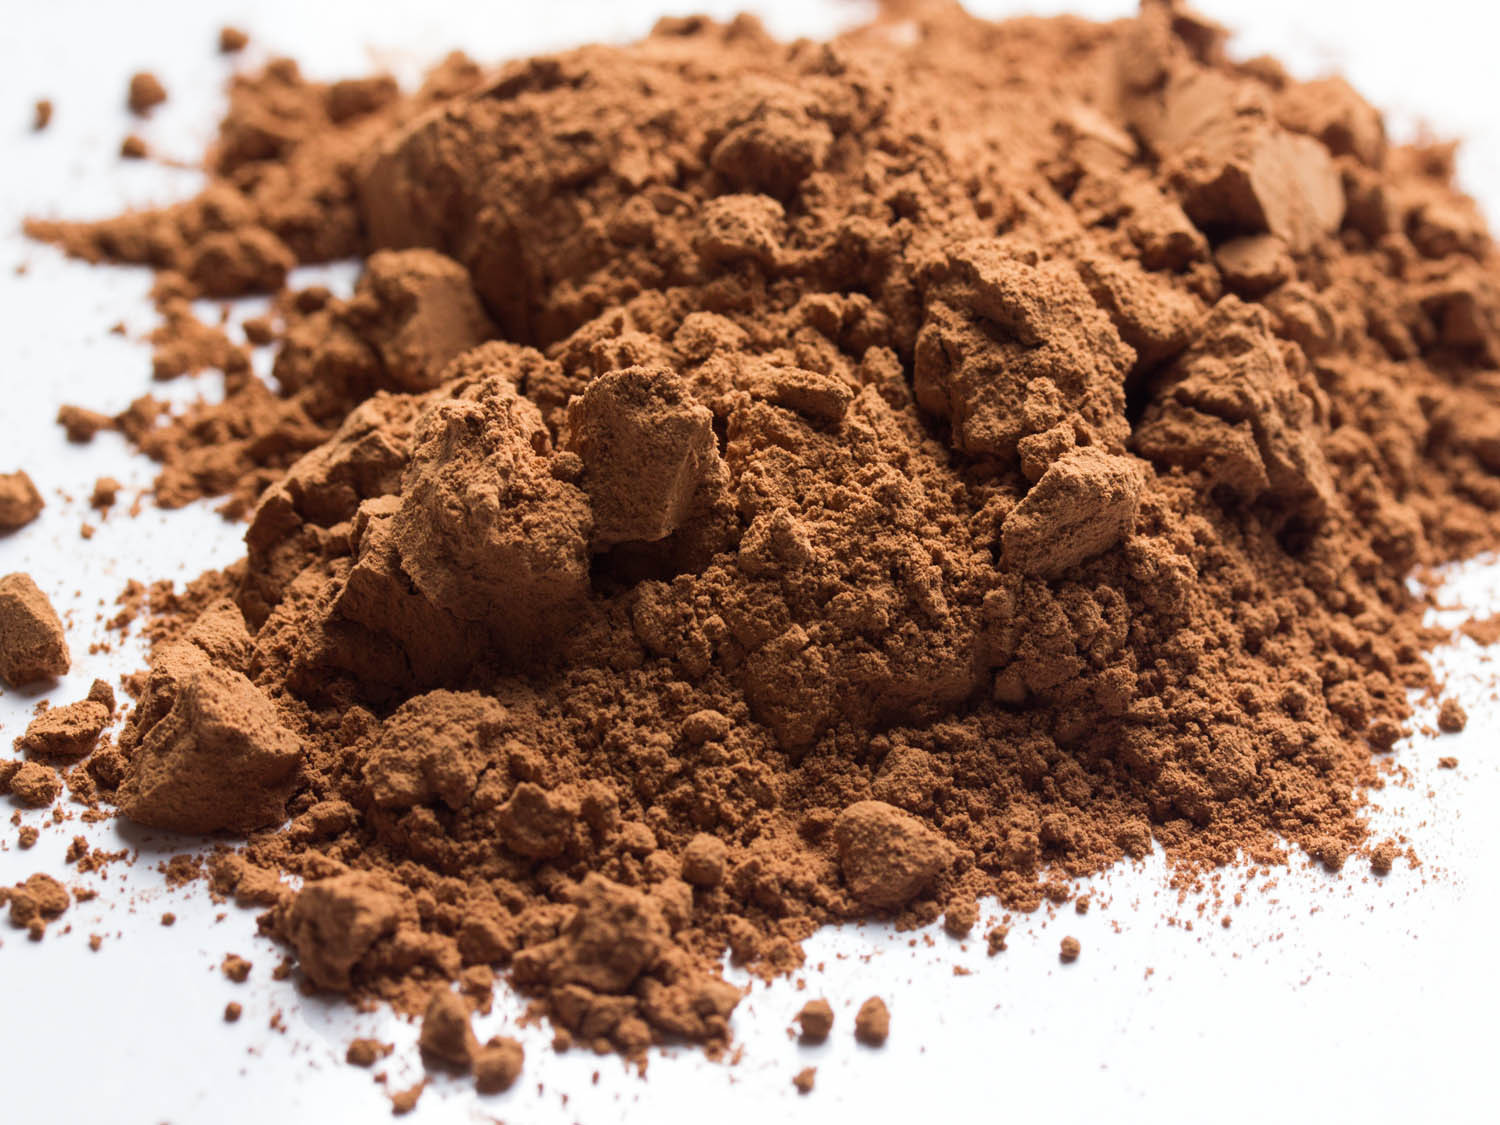 How To Make Chocolate From Cocoa Powder  Can I Substitute Unsweetened Chocolate for Cocoa Powder